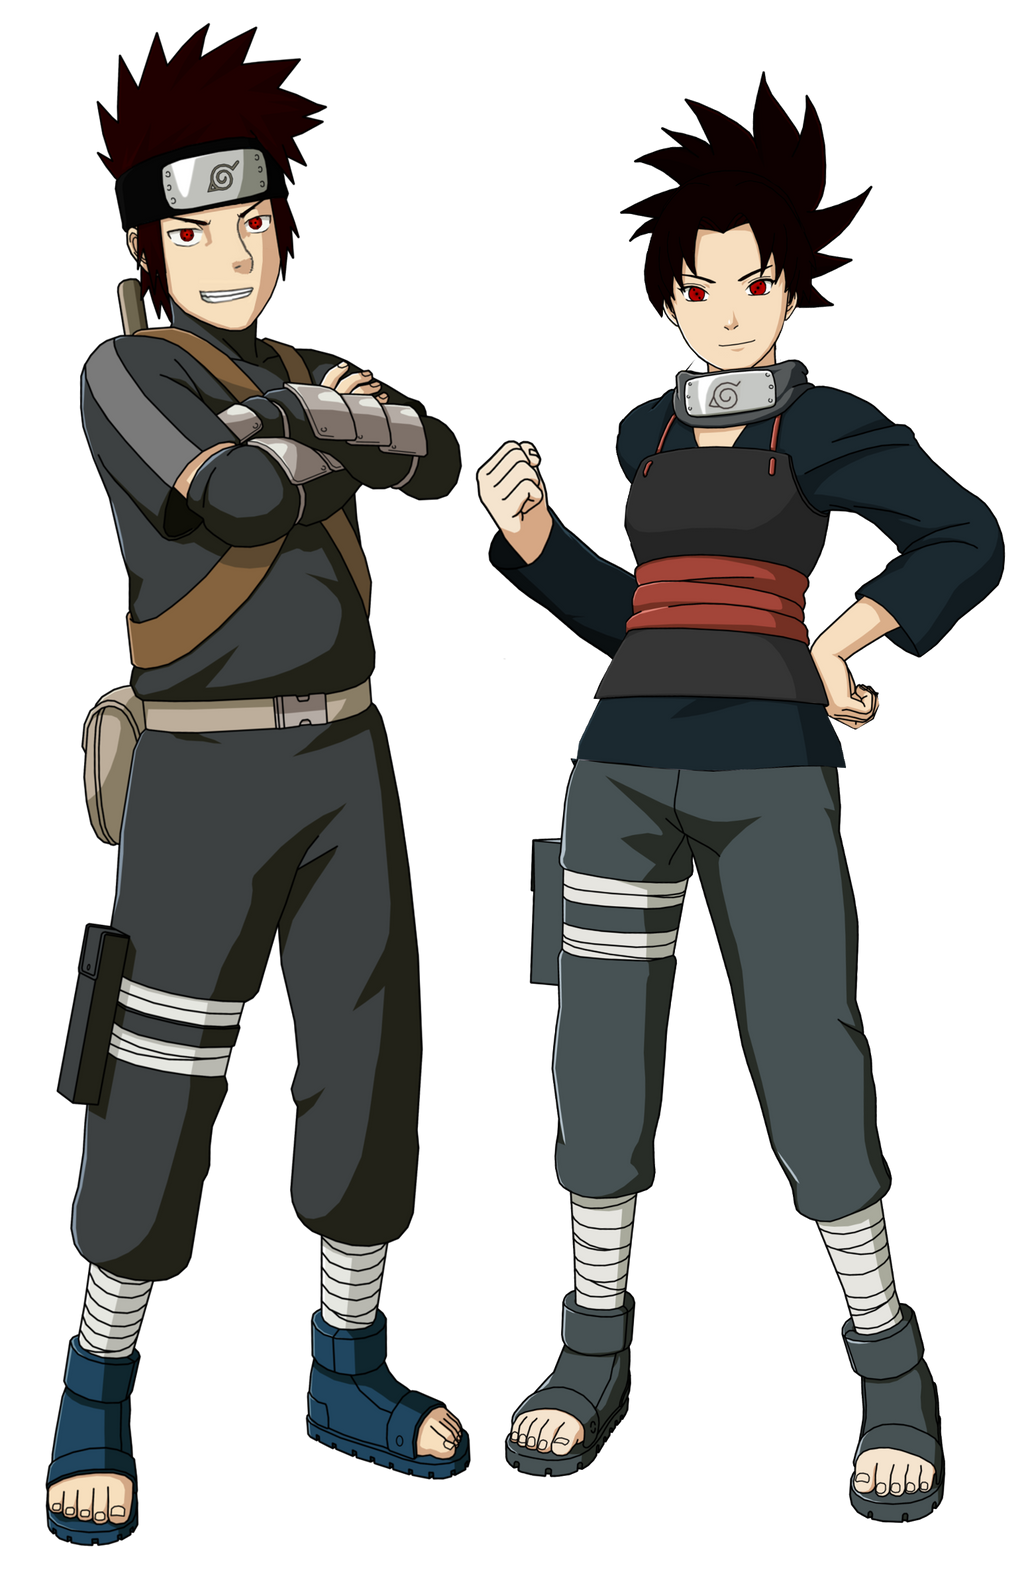 The Crossover Game: Jin and Aoi Hatake by LeeHatake93 on ...